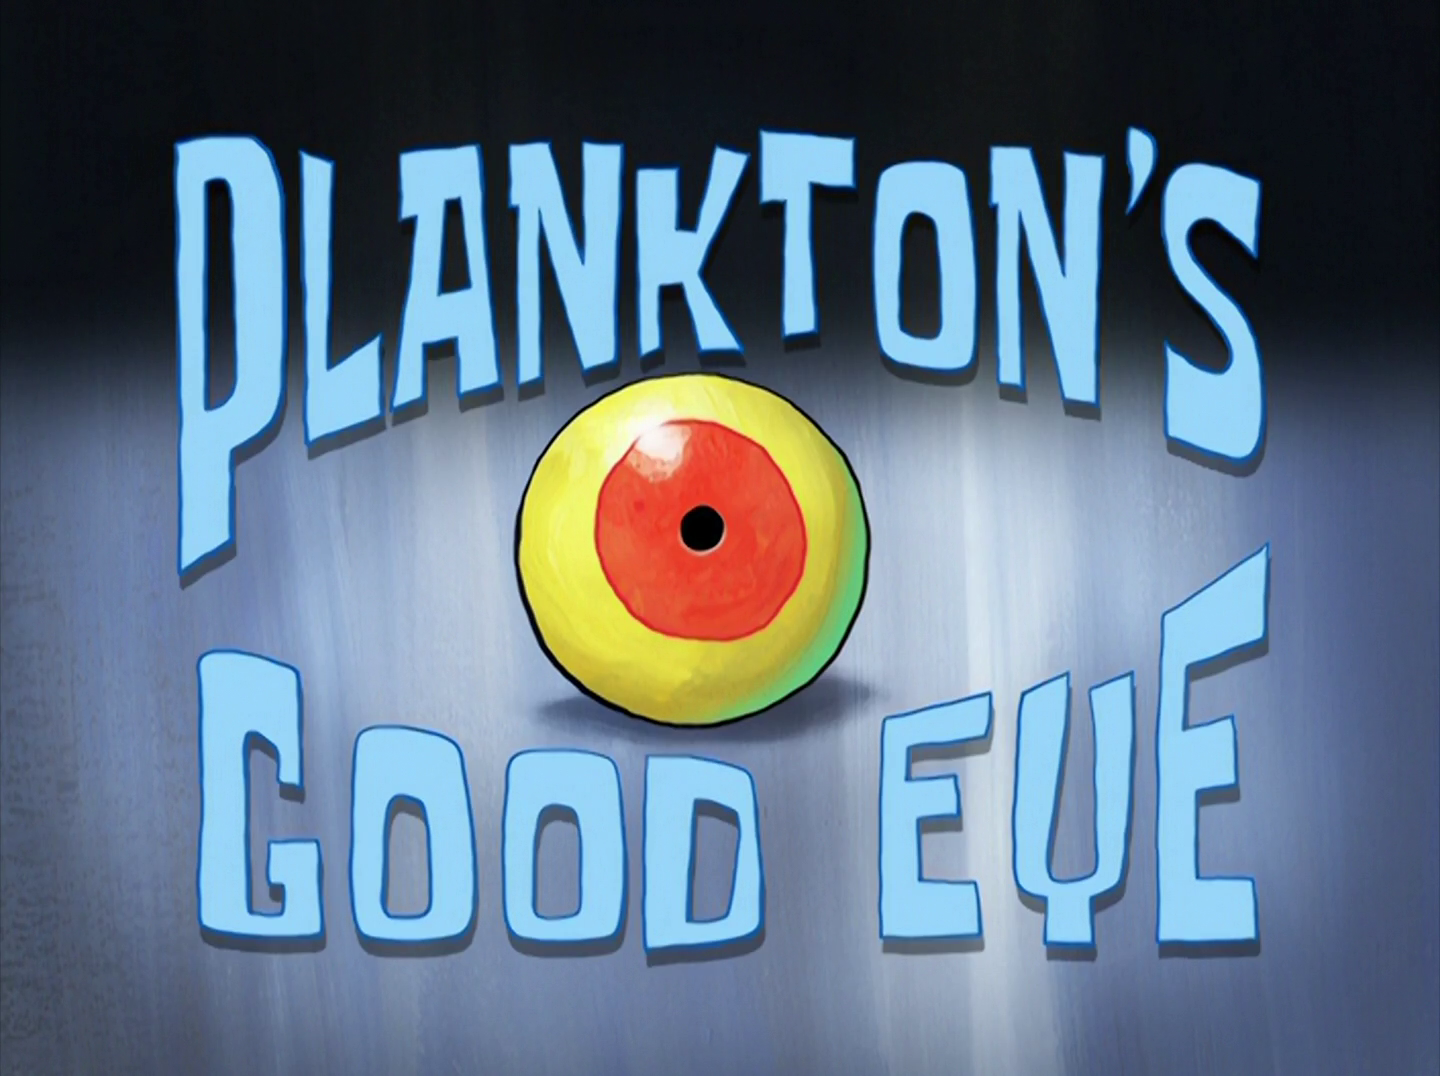 plankton u0027s good eye transcript encyclopedia spongebobia